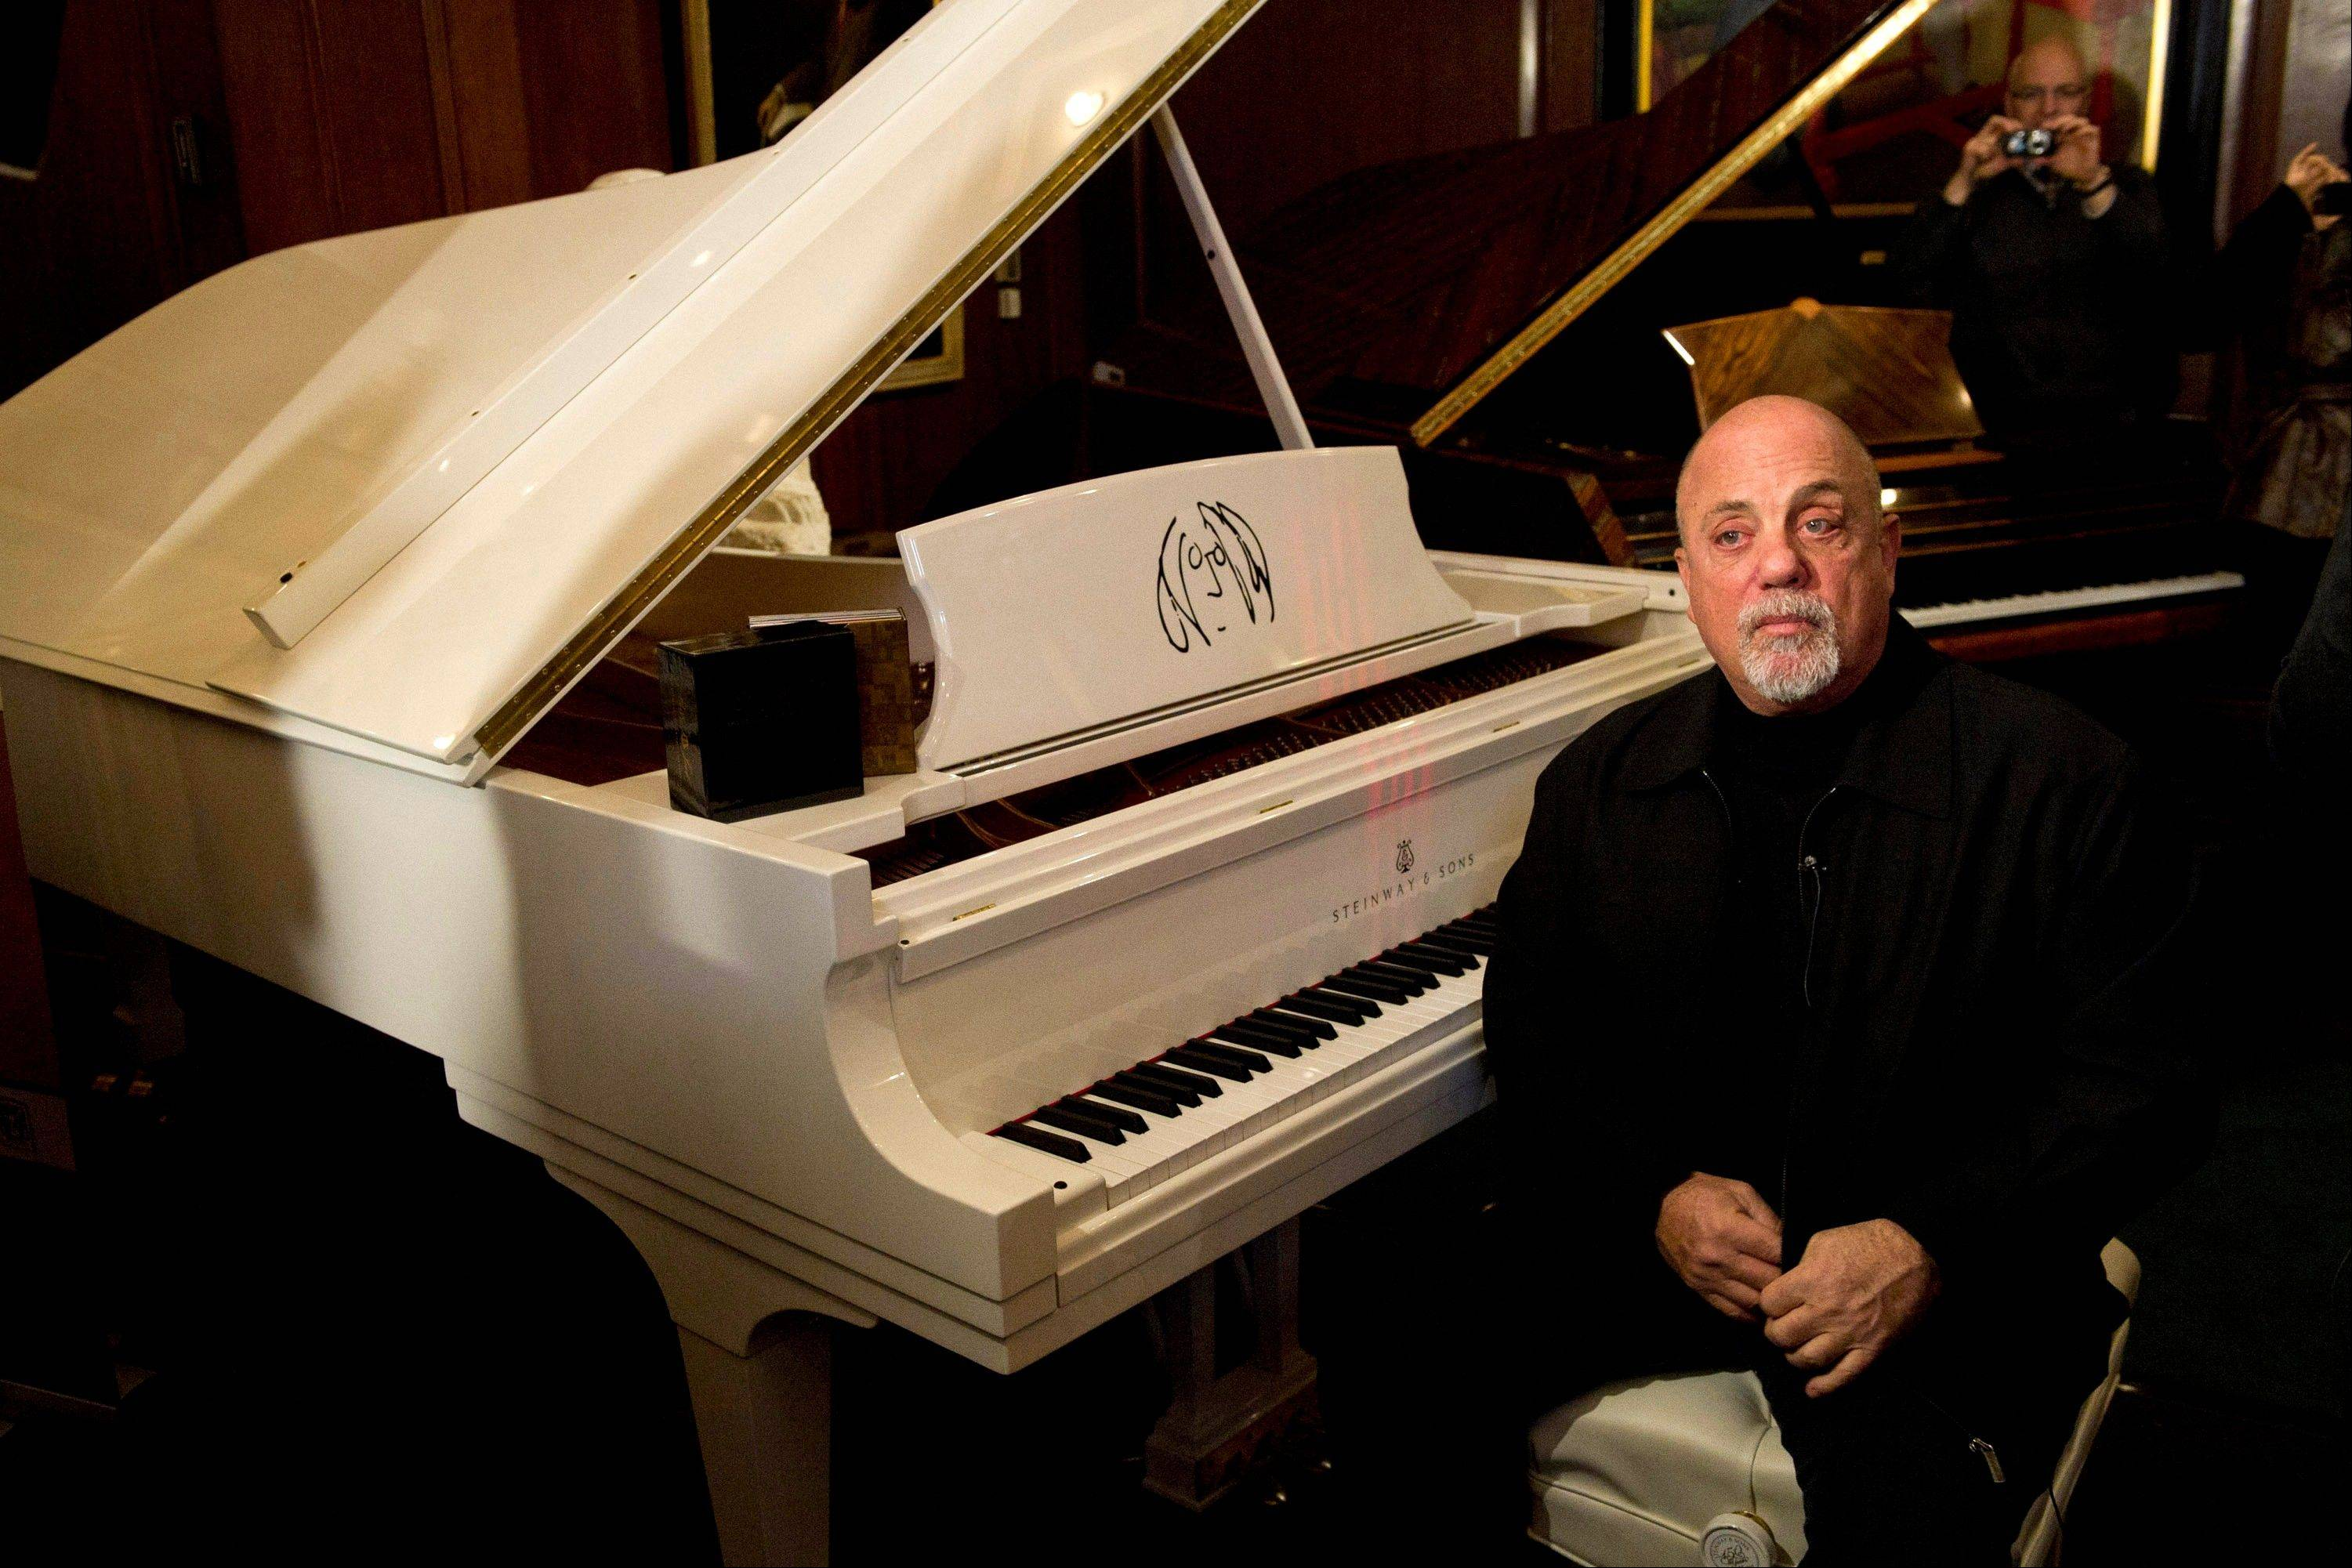 Billy Joel, along with Carlos Santana, jazz artist Herbie Hancock, opera star Martina Arroyo and actress Shirley MacLaine, will receive this year's Kennedy Center Honors.